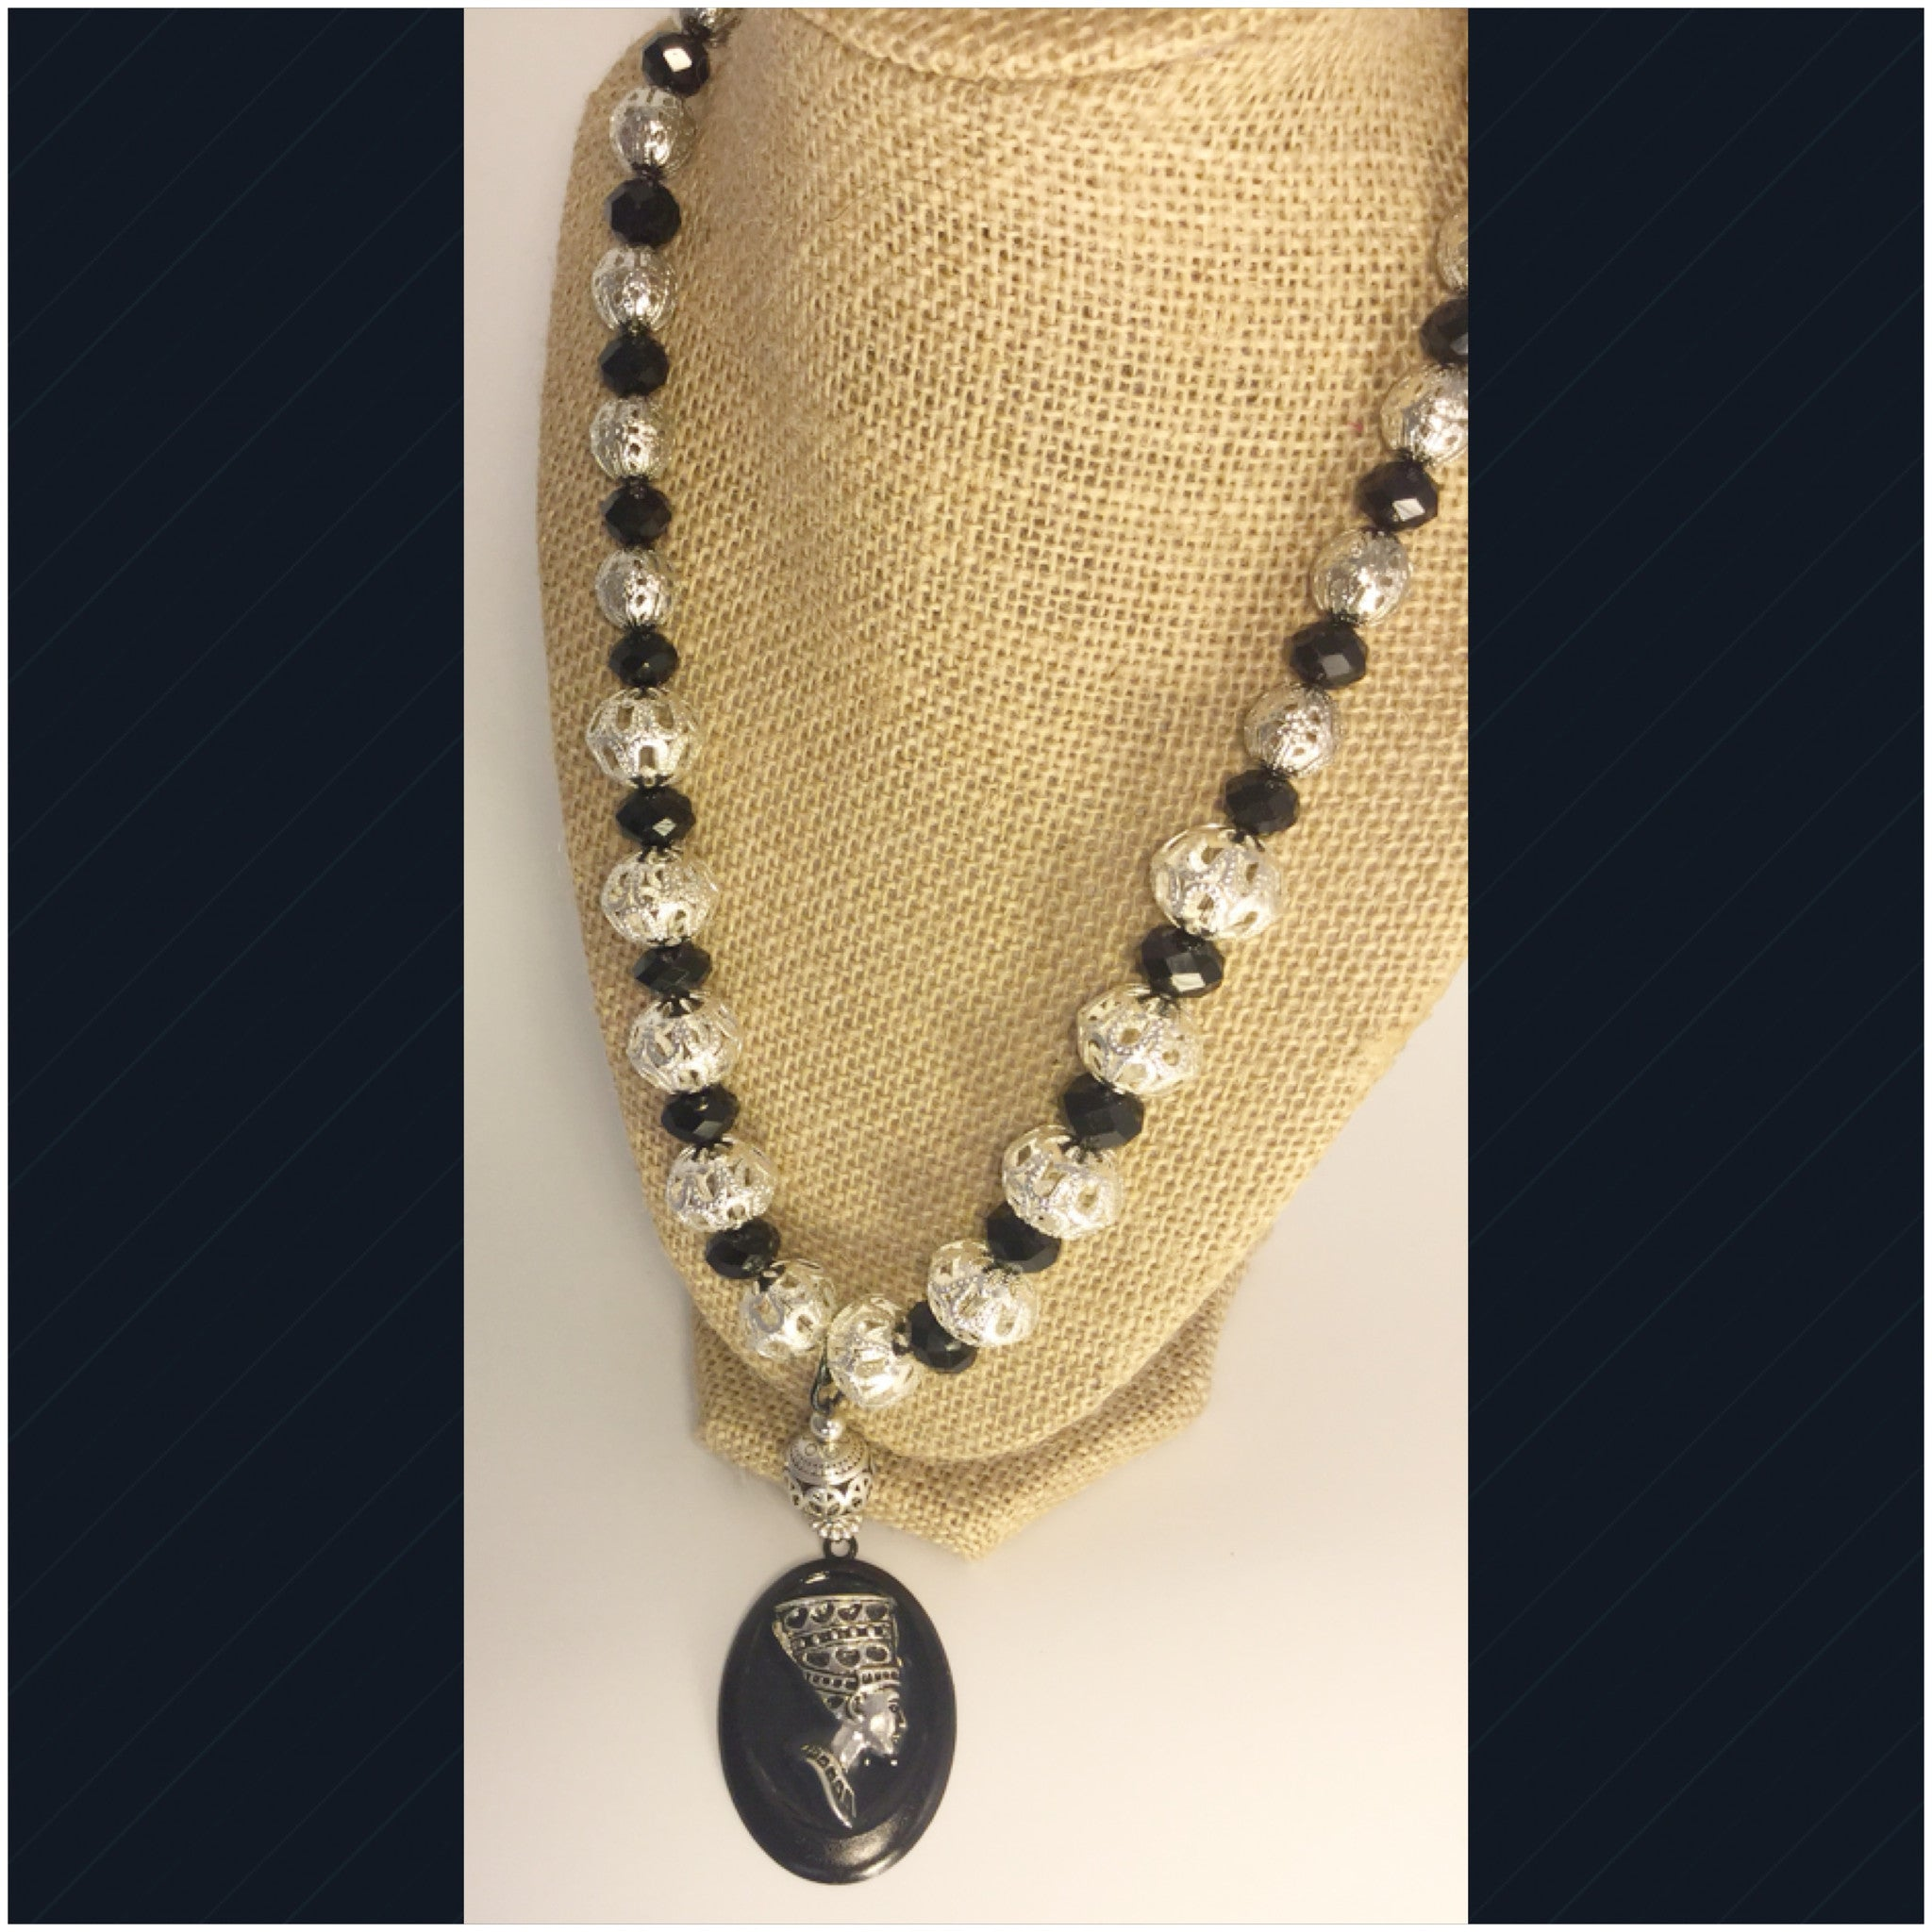 Nefertiti Queen Silver Necklace 3 D Crystal...